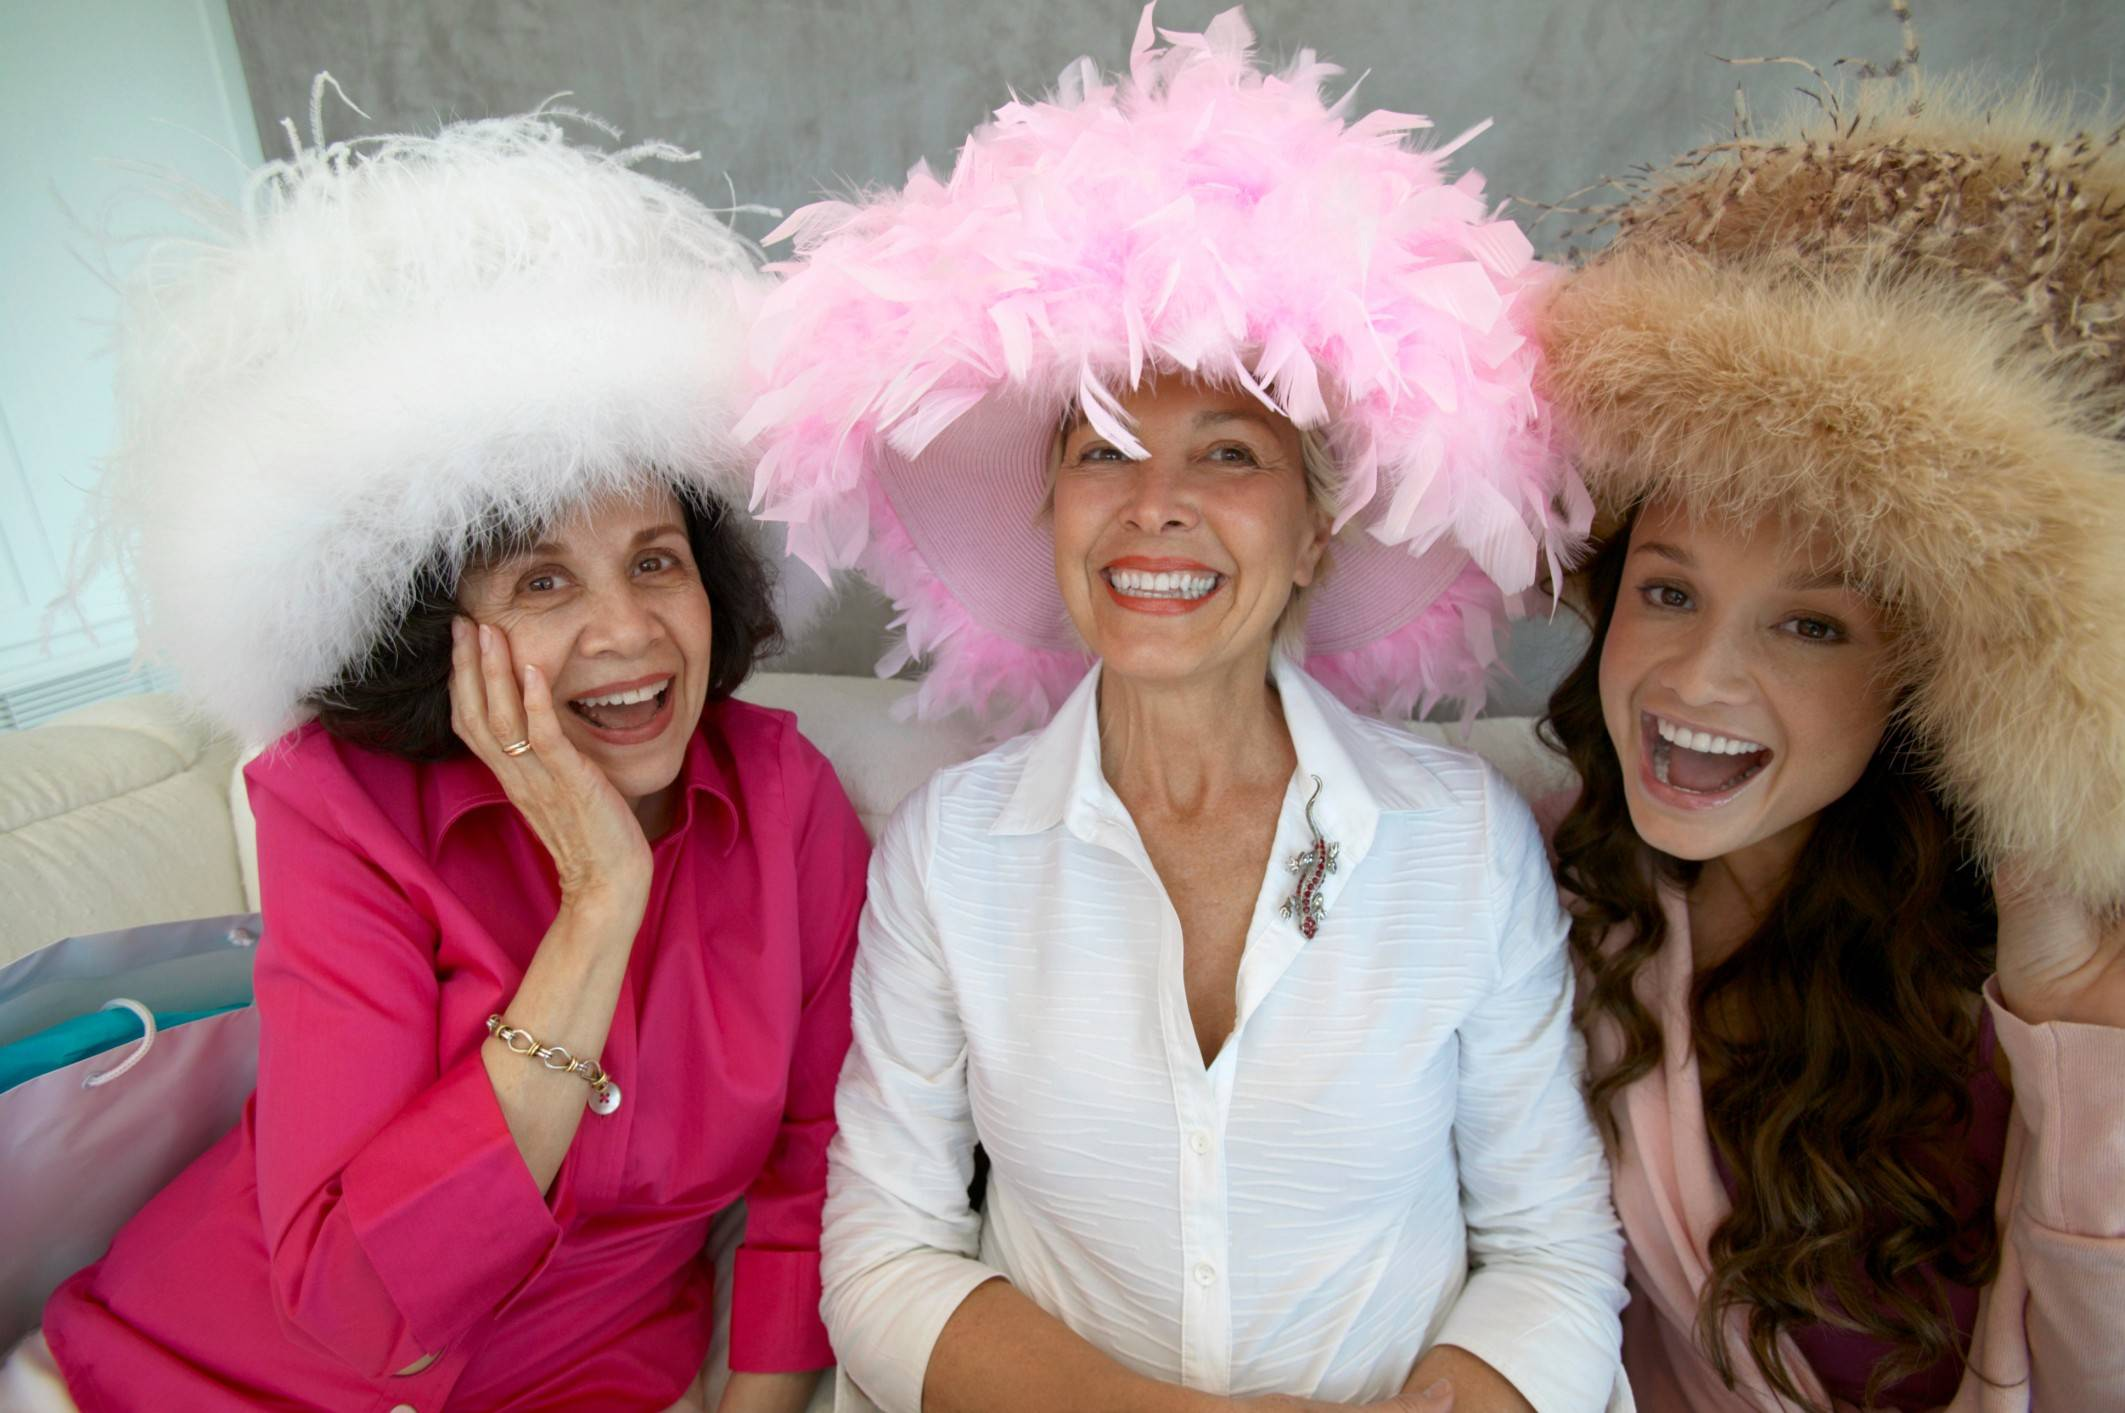 The woman who wears the most eccentric hat will win a prize at the Mother's Day celebration at the Montrose Room in Rosemont.